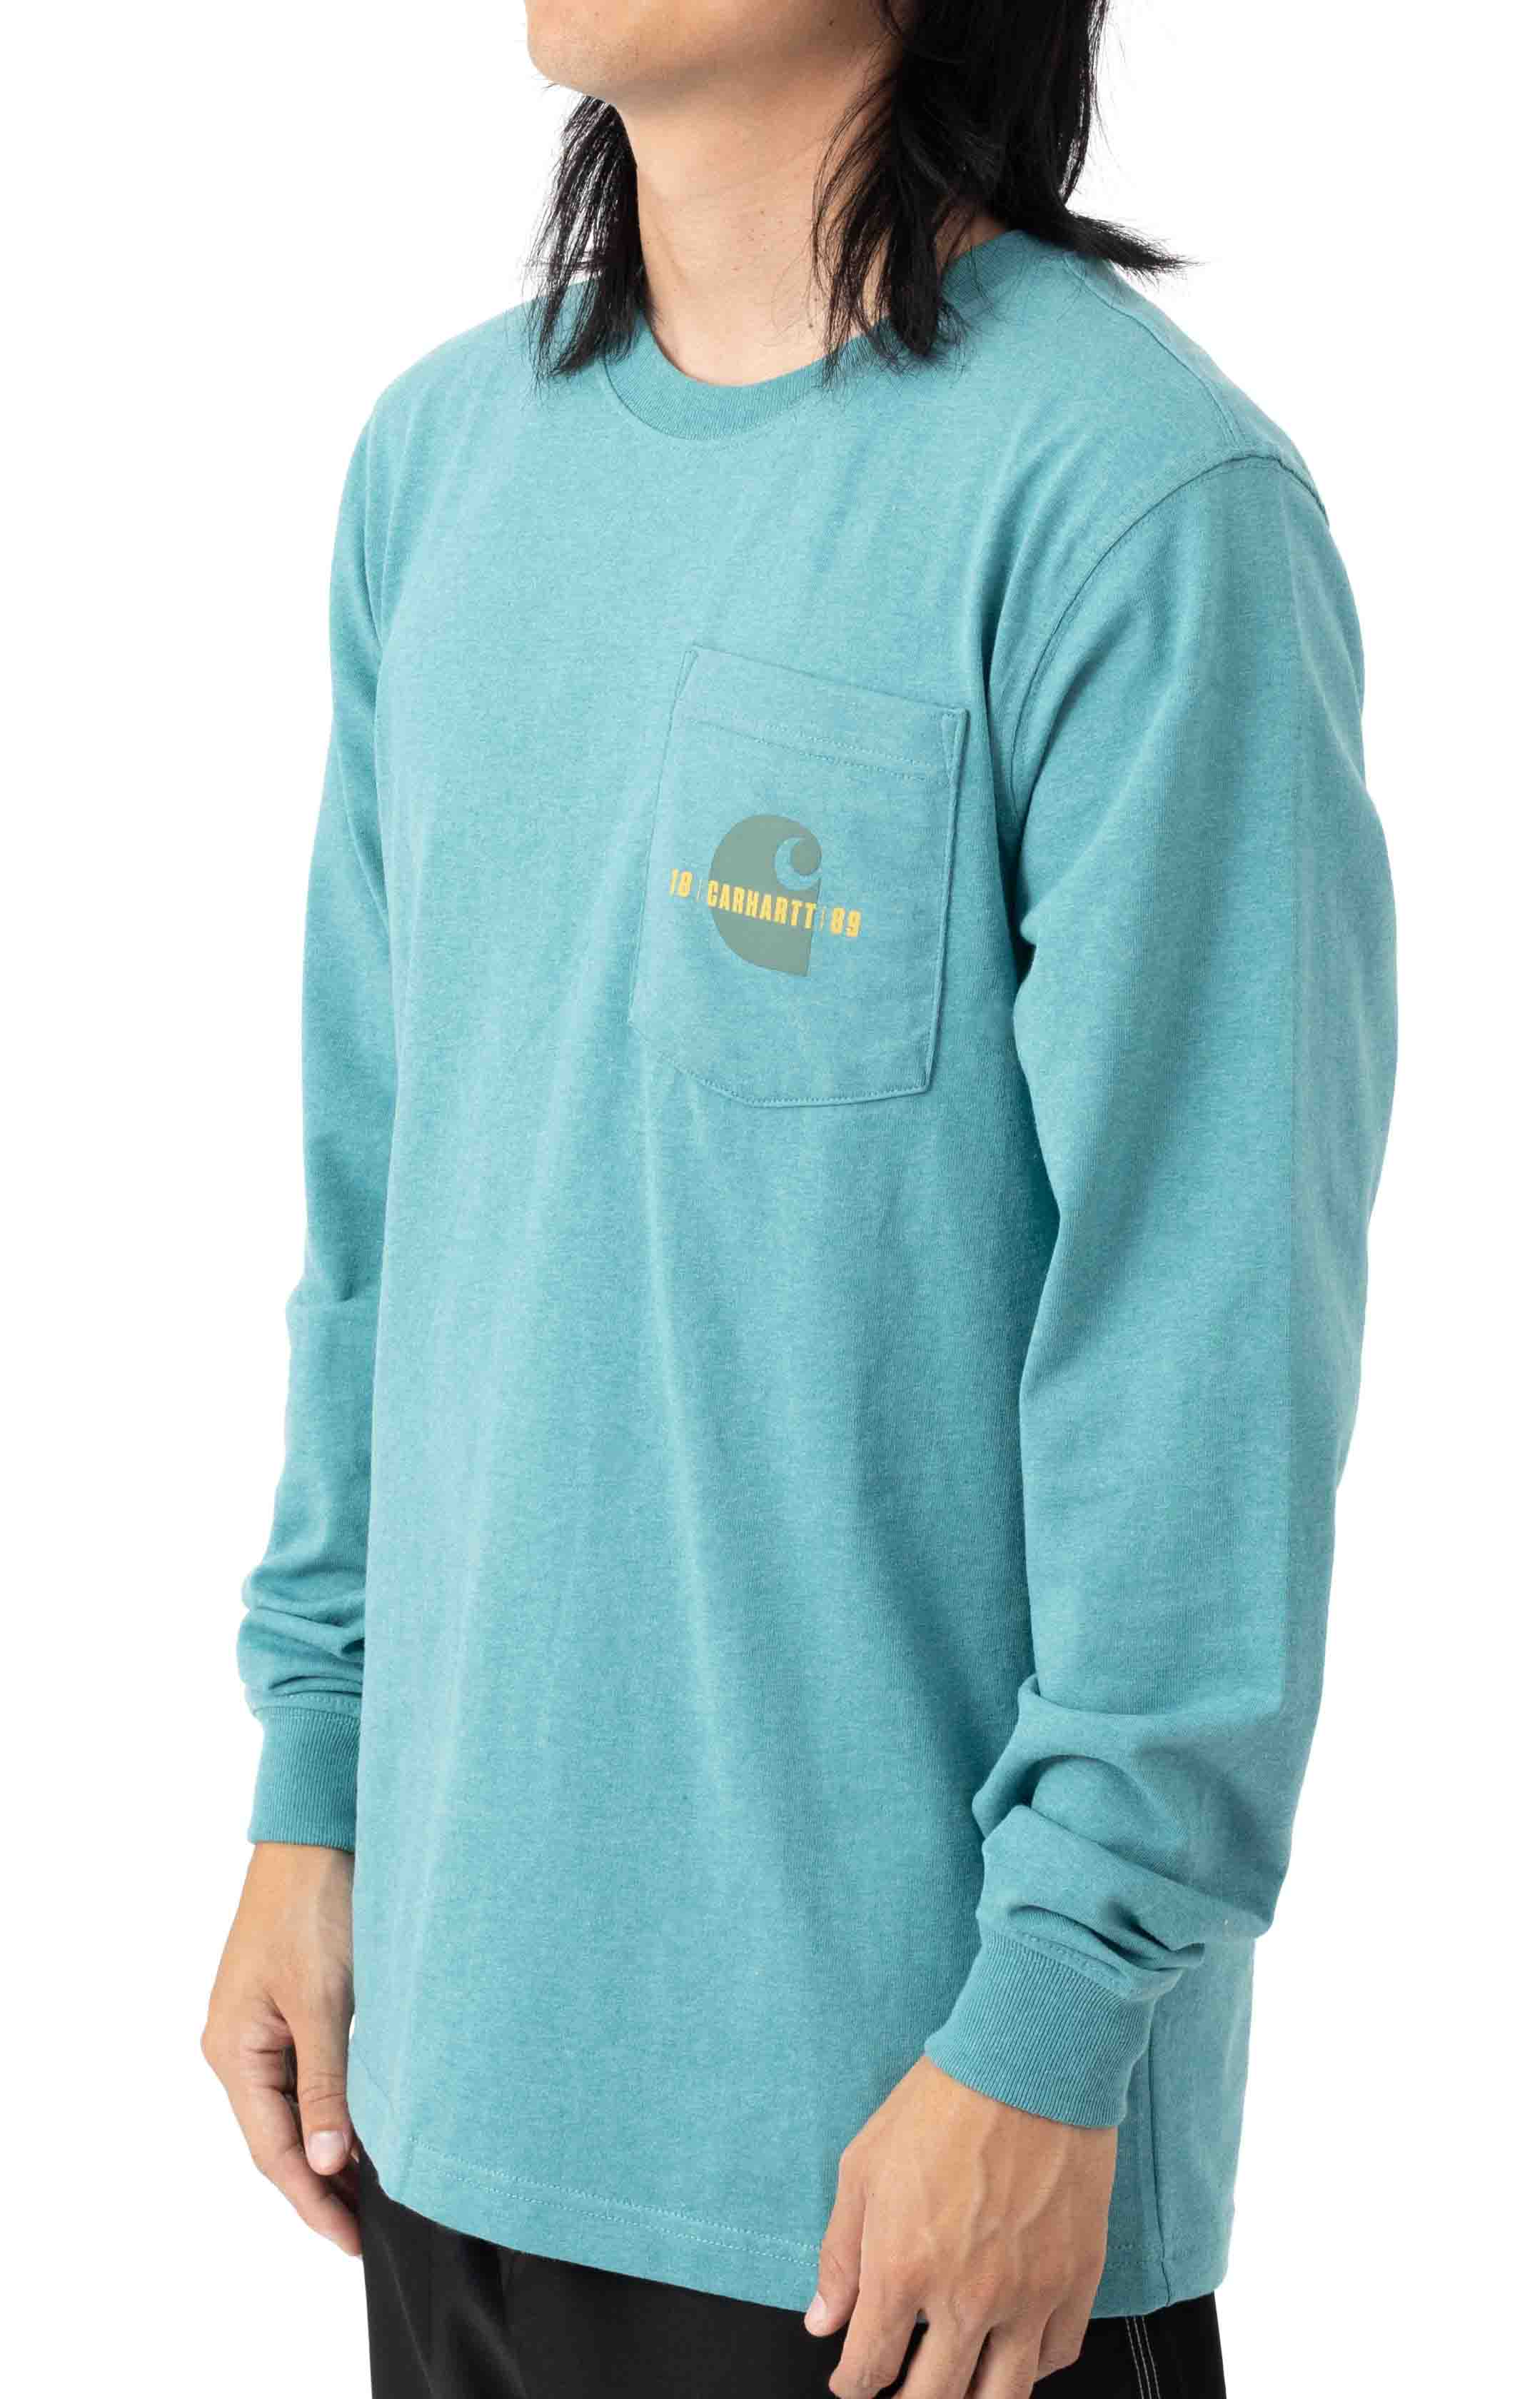 (105054) Loose Fit Heavyweight L/S Pocket Carhartt C Graphic T-Shirt - Blue Spruce Heather 3